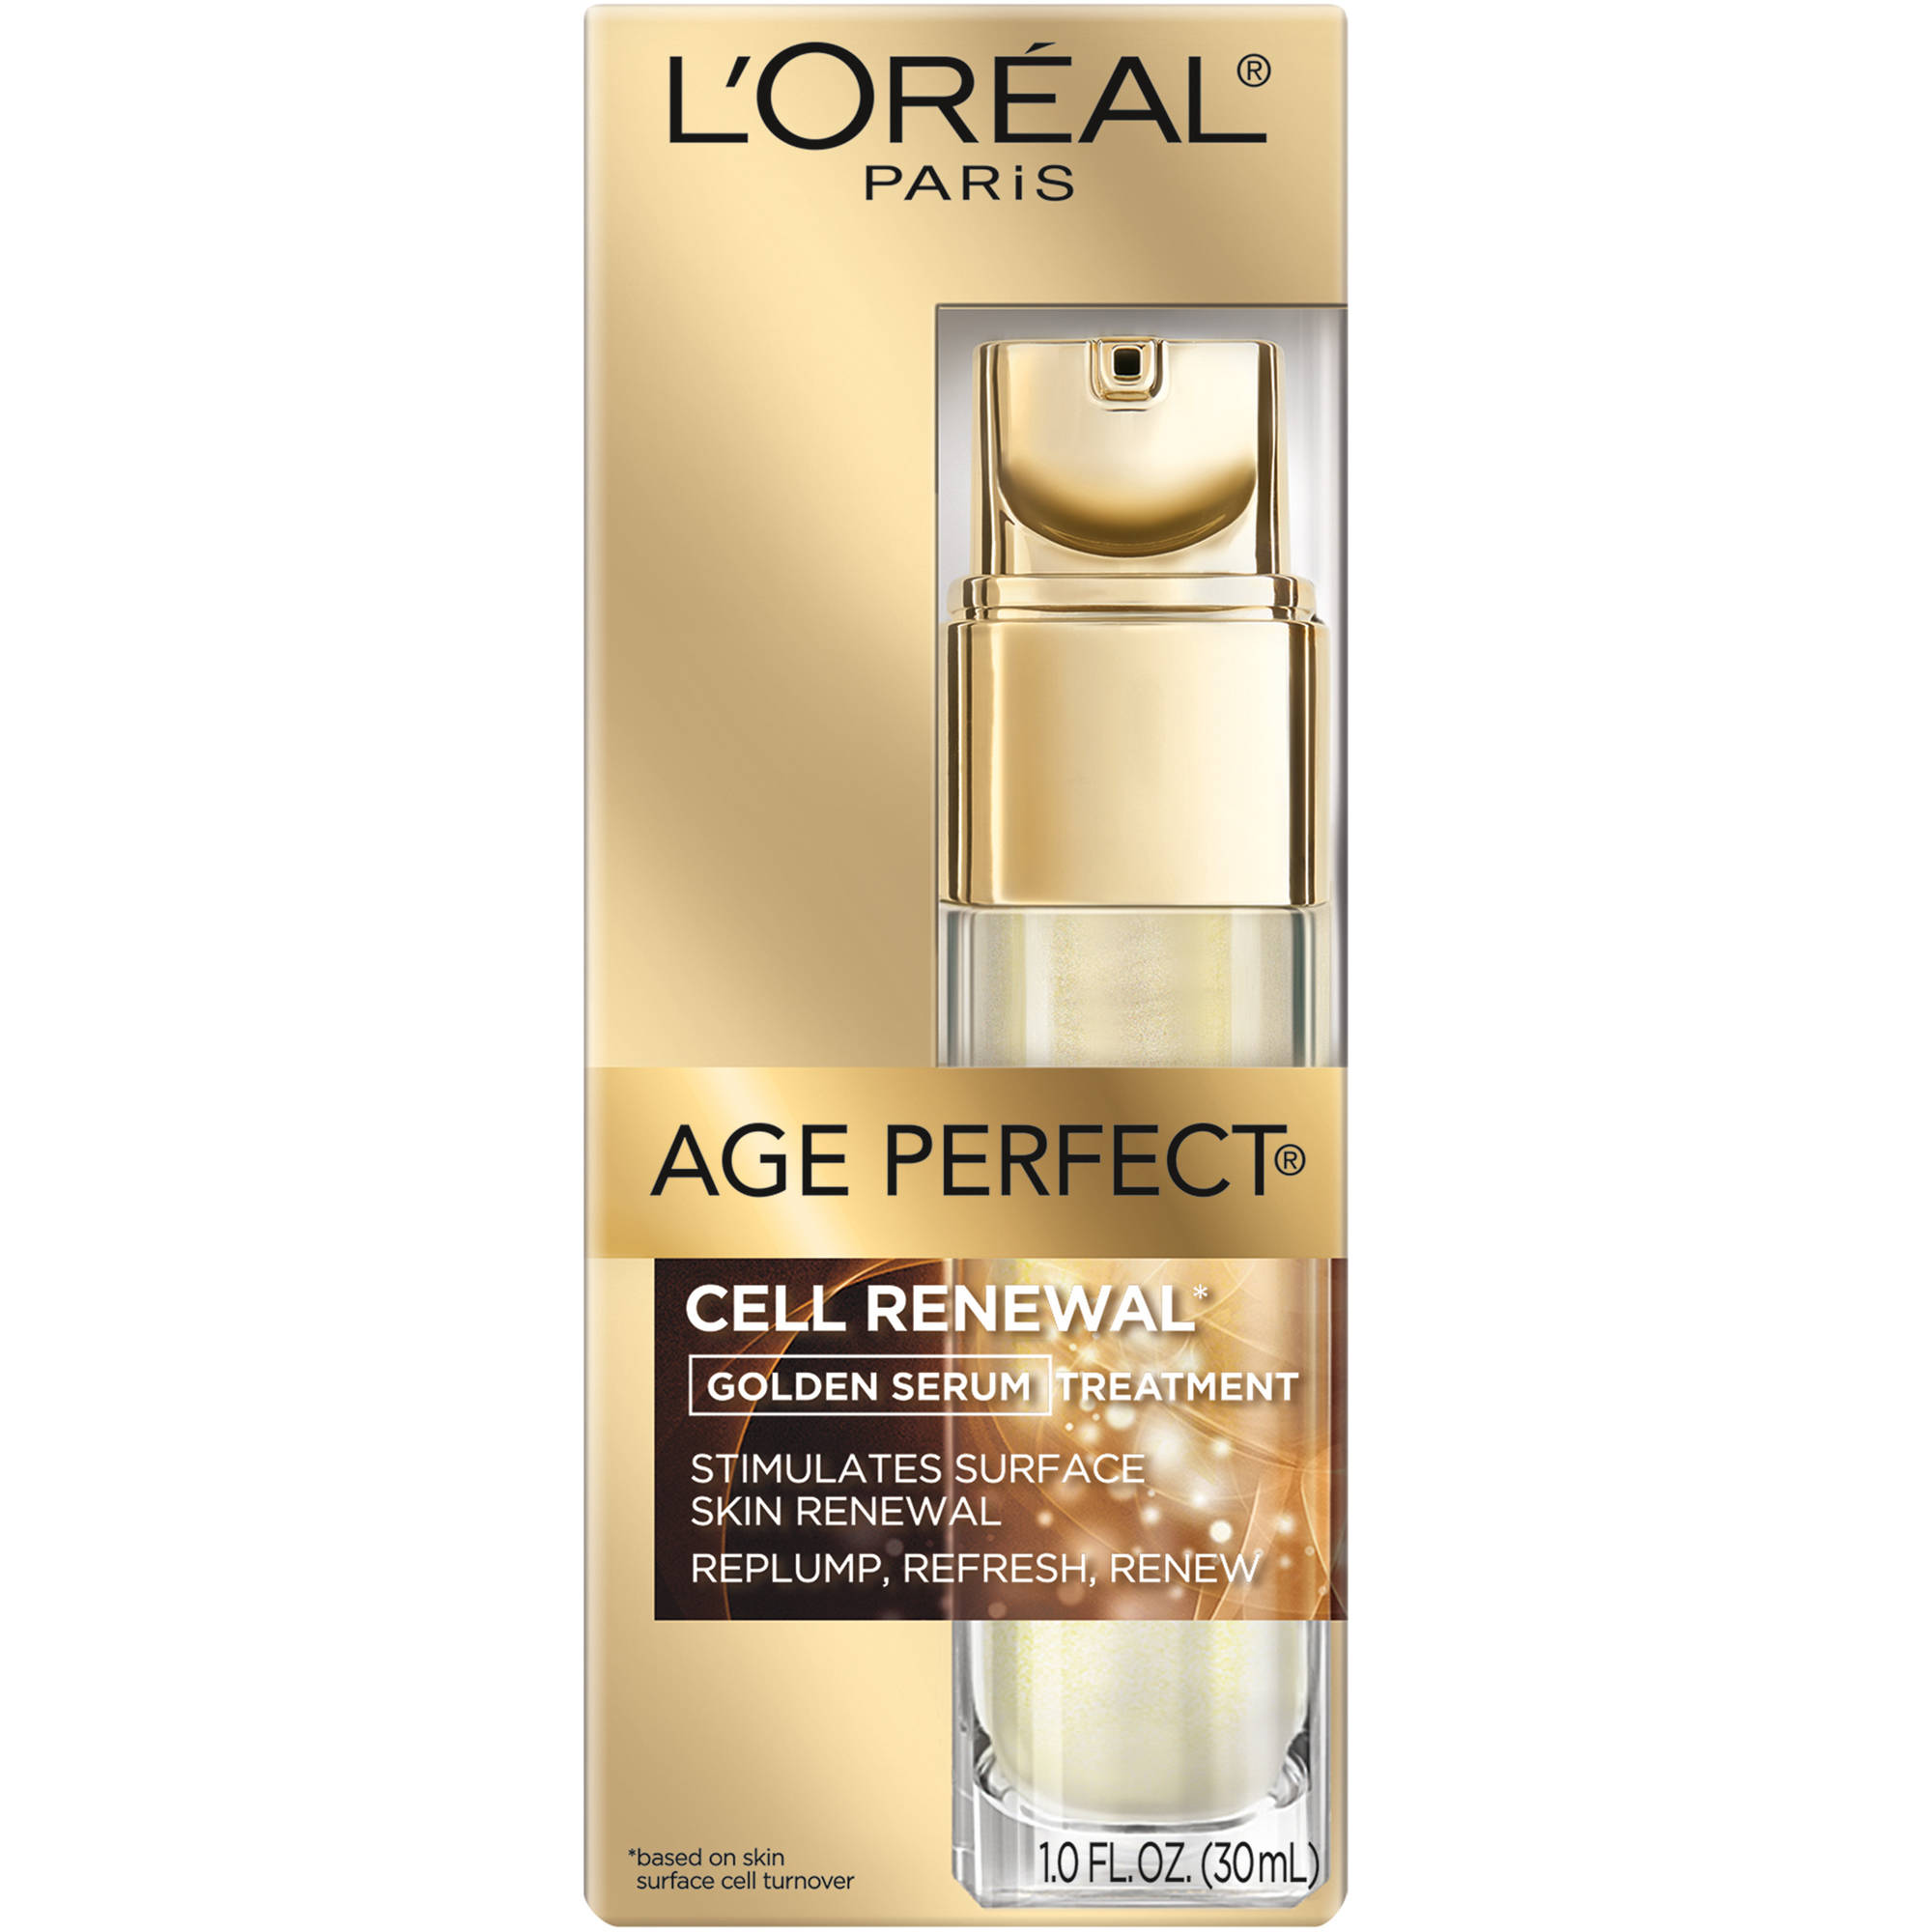 L'Oreal Paris Age Perfect Cell Renewal* Golden Serum Treatment